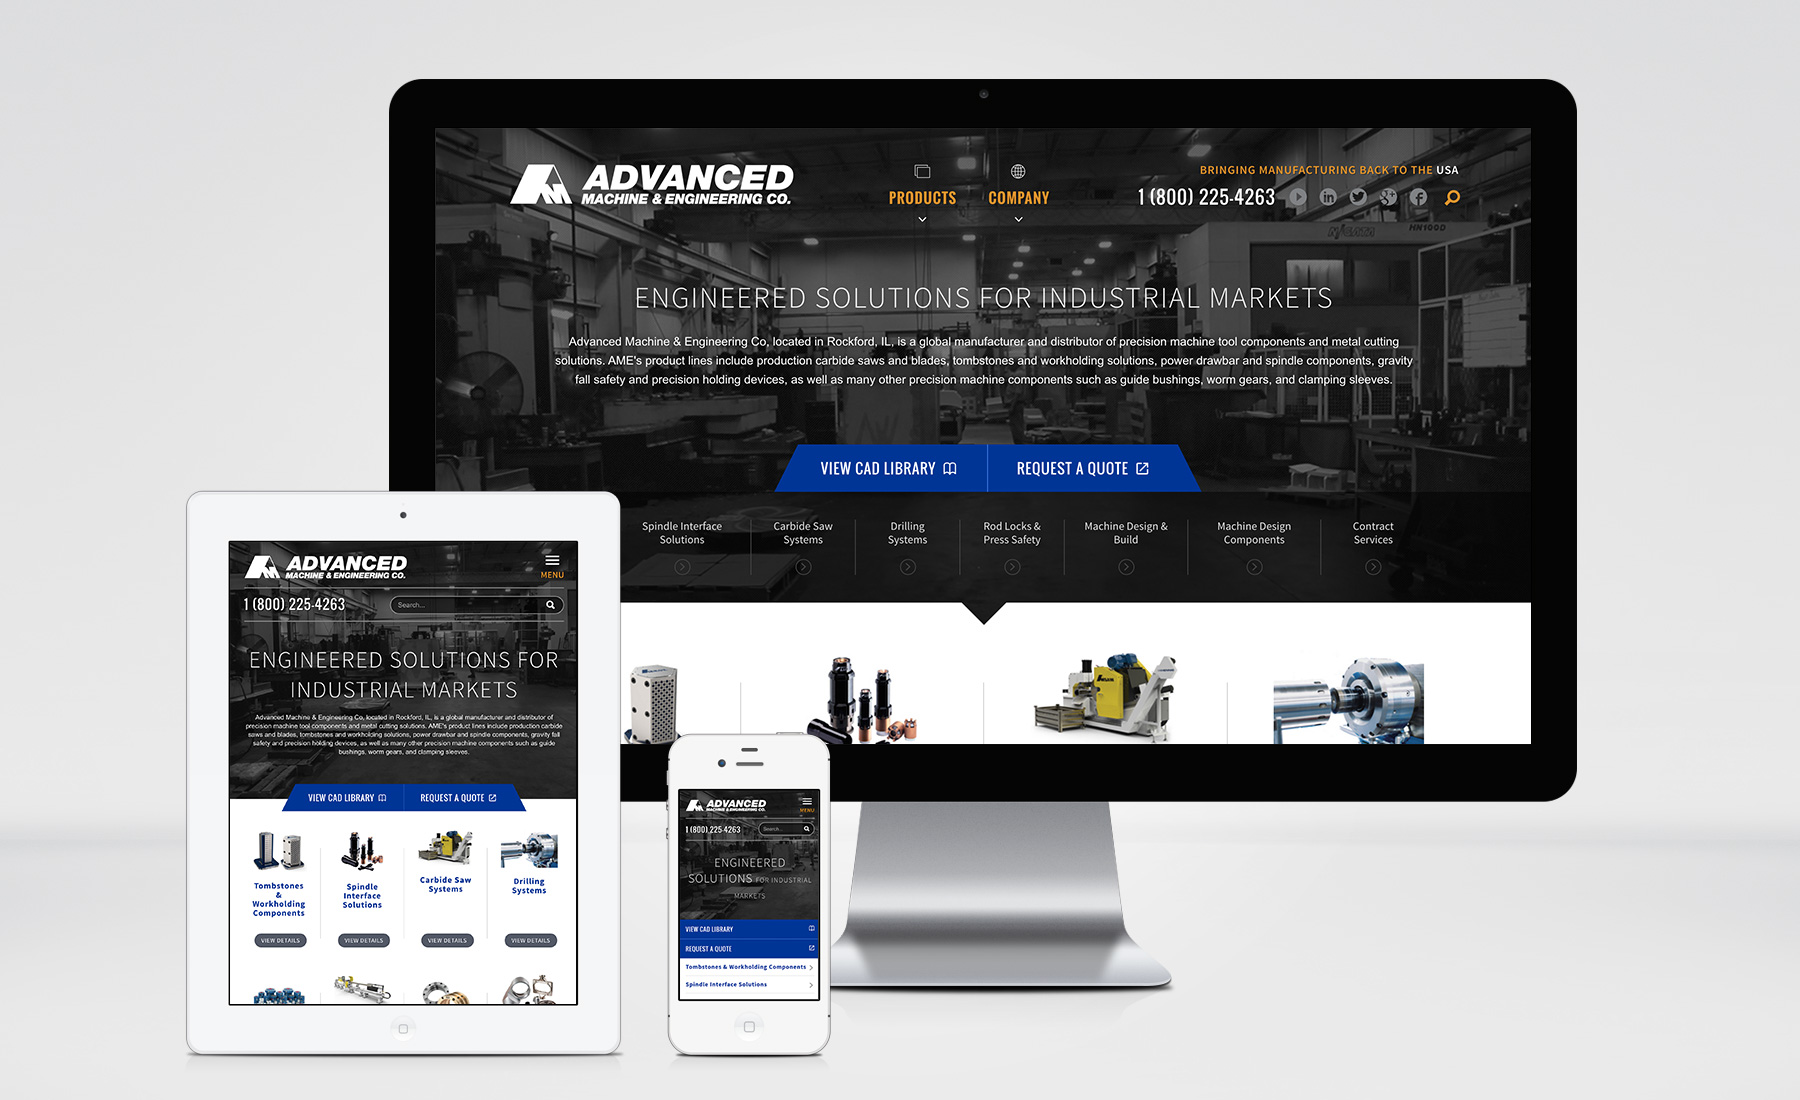 Advanced Machine & Engineering (AME) Website image